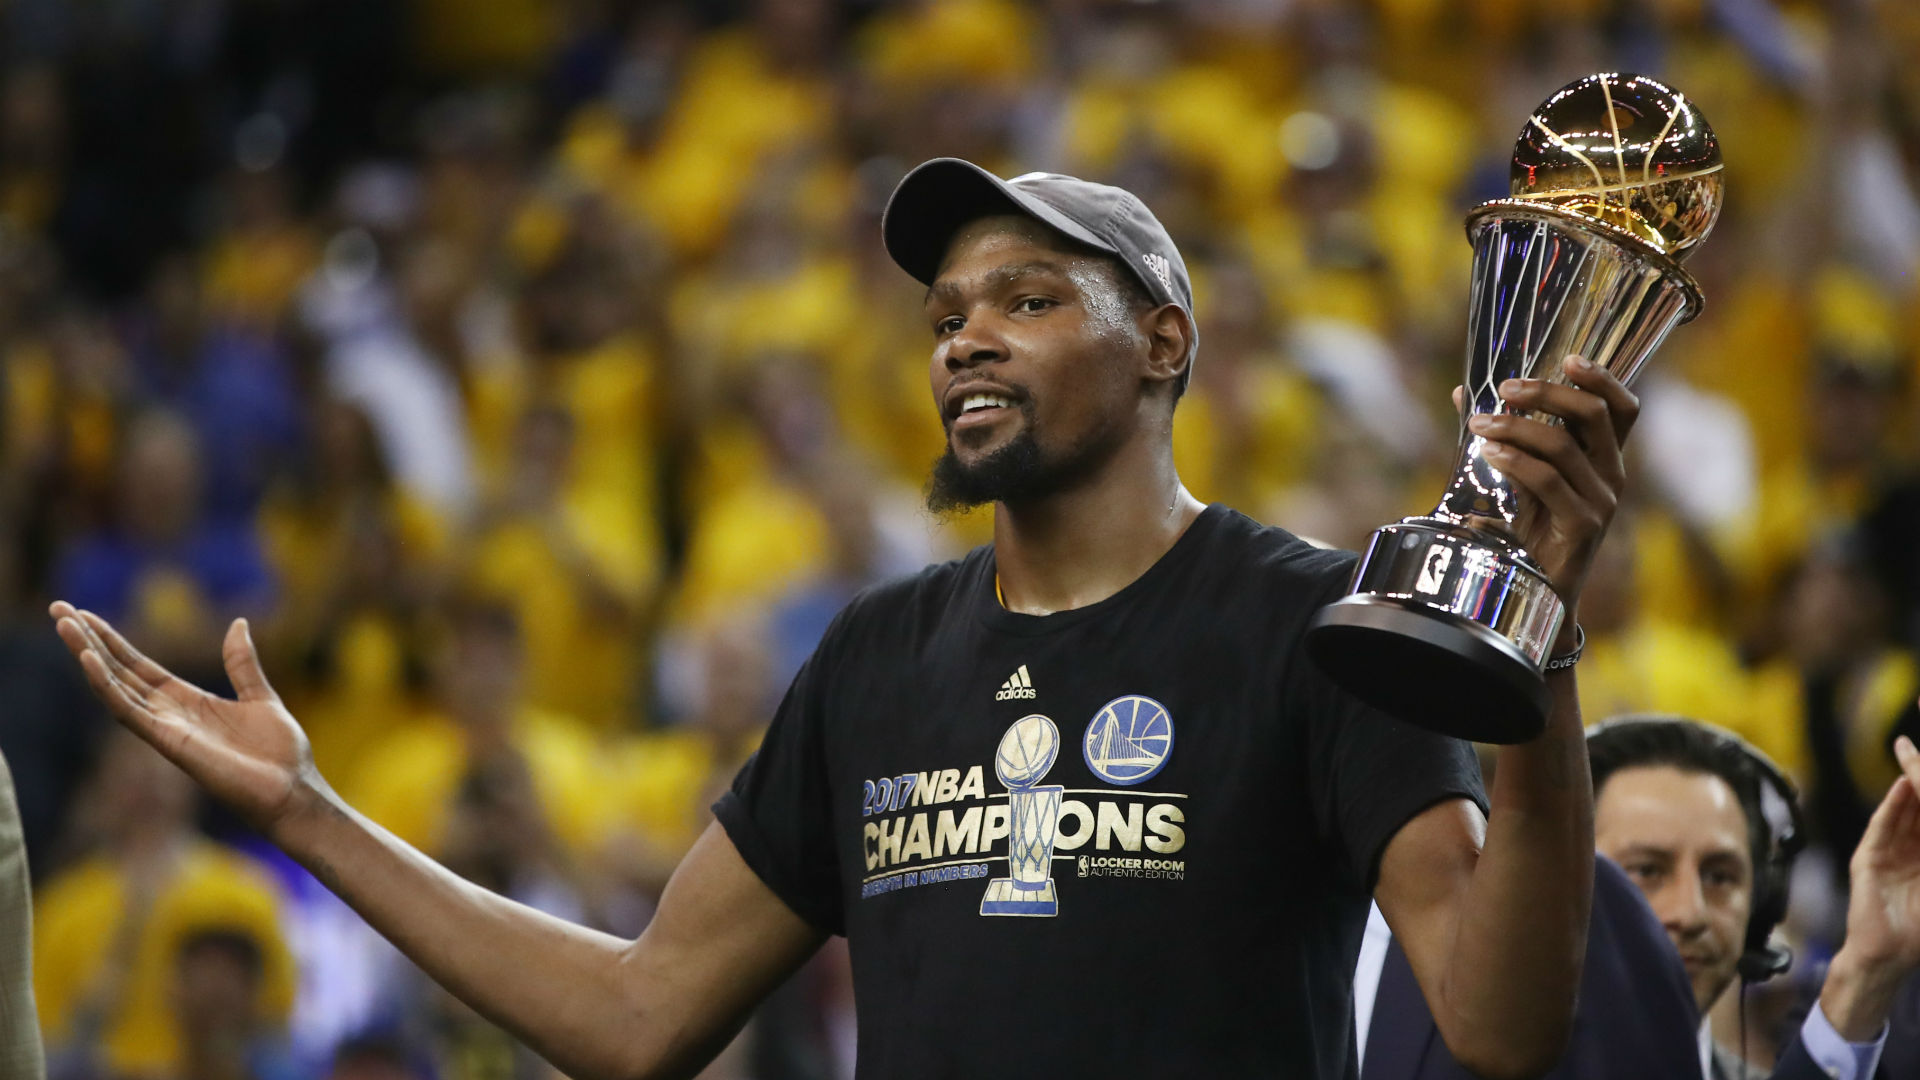 Kevin Hart gives props to NBA Finals MVP Kevin Durant